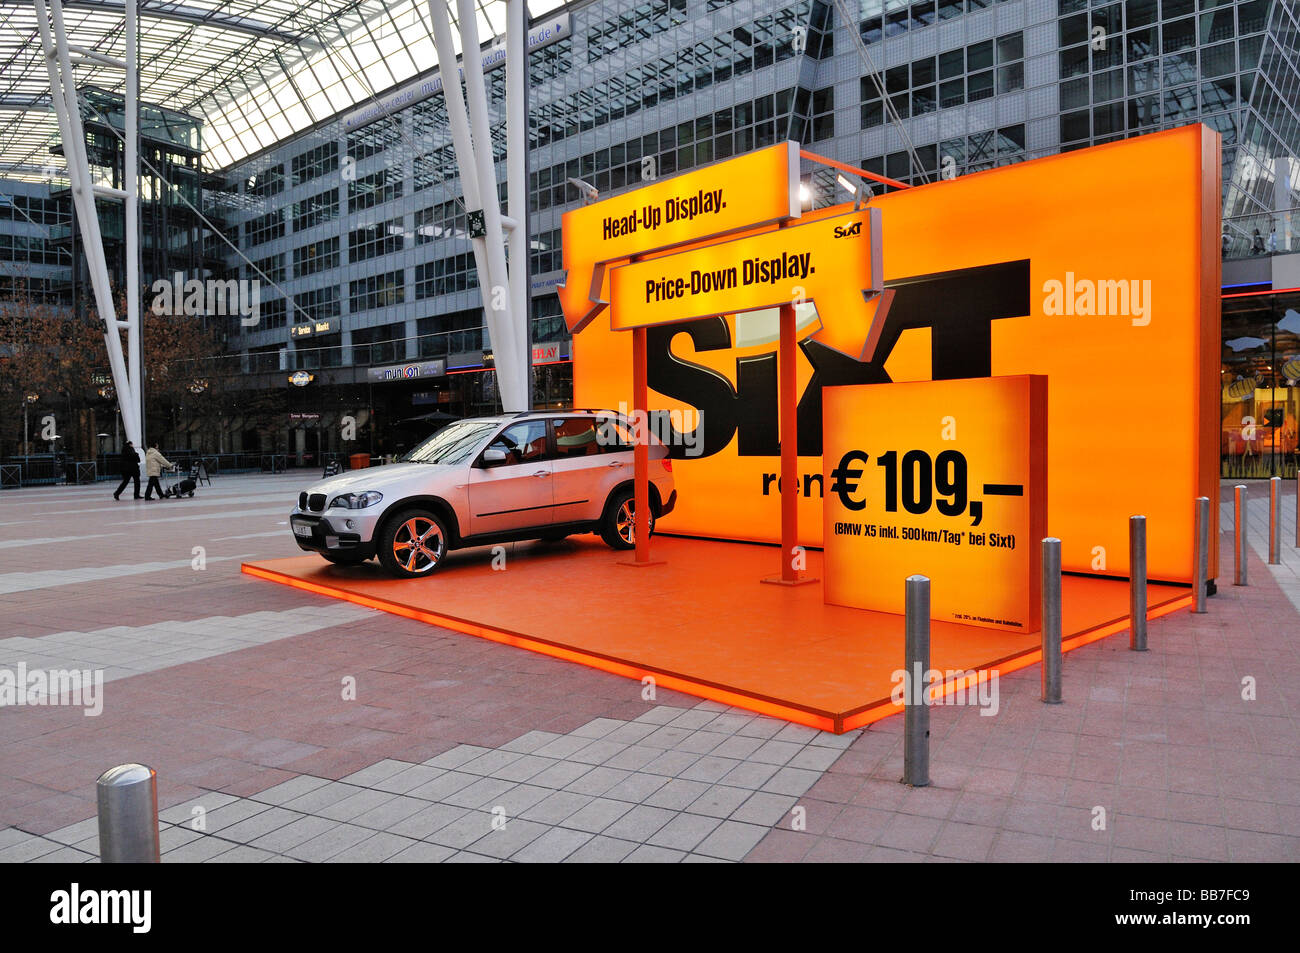 Ad for sixt car rental service terminal 2 muc ii airport munich